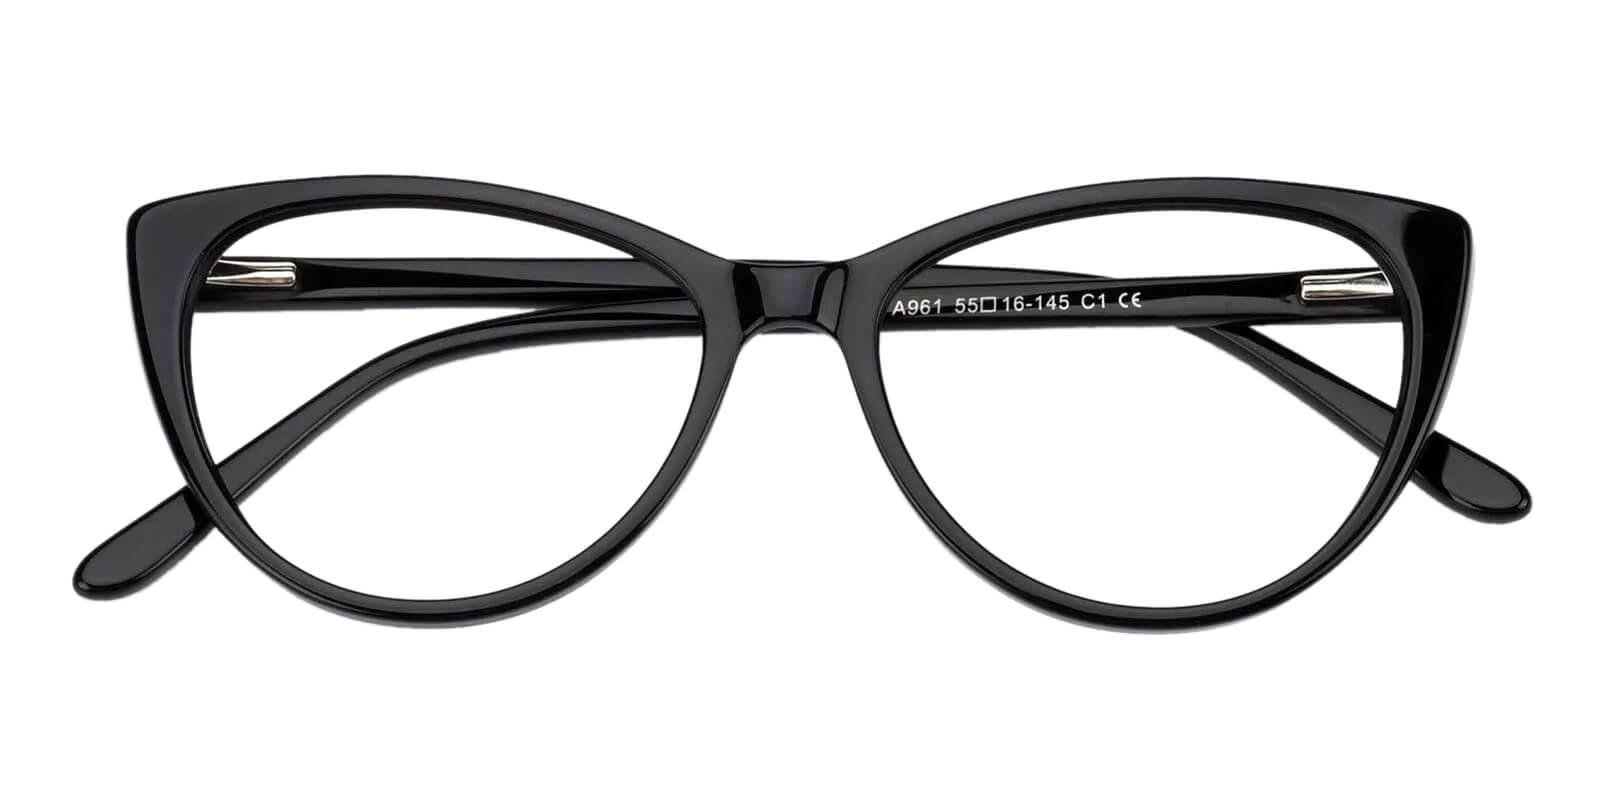 Traci Black Acetate Eyeglasses , Fashion , SpringHinges , UniversalBridgeFit Frames from ABBE Glasses